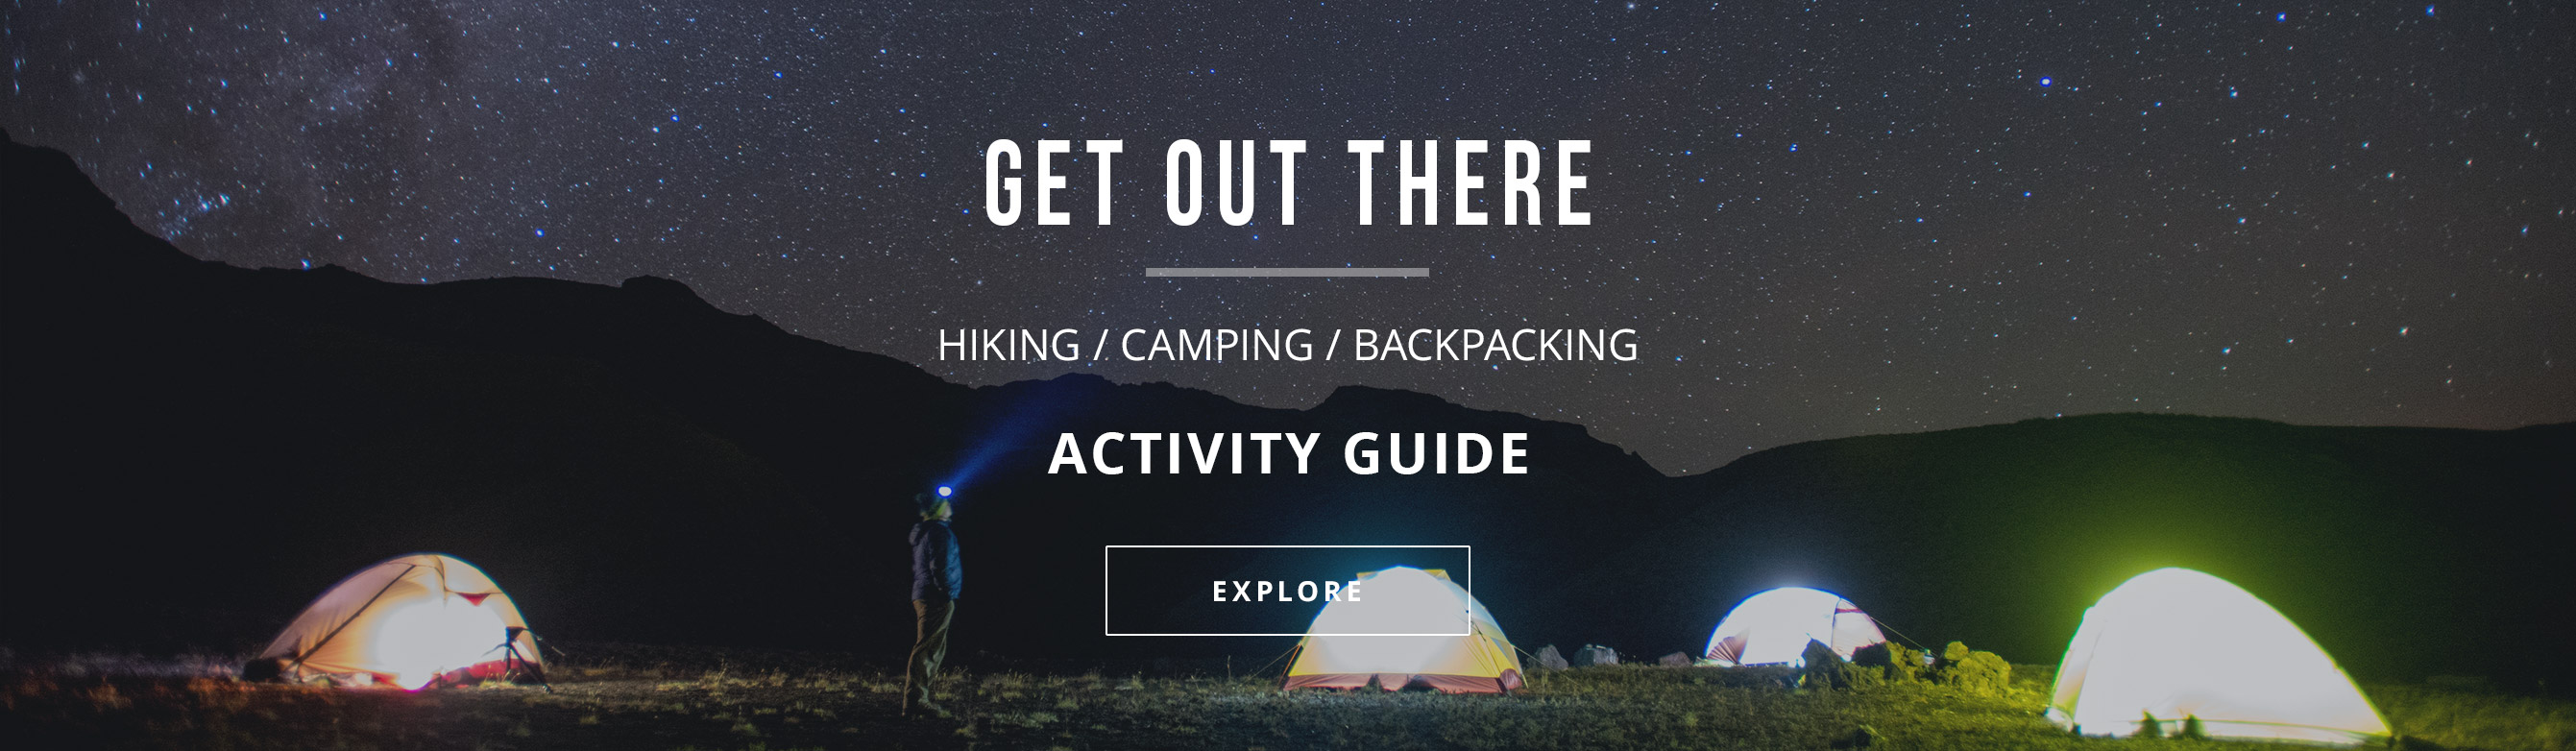 Hiking | Camping | Backpacking Activity Guide